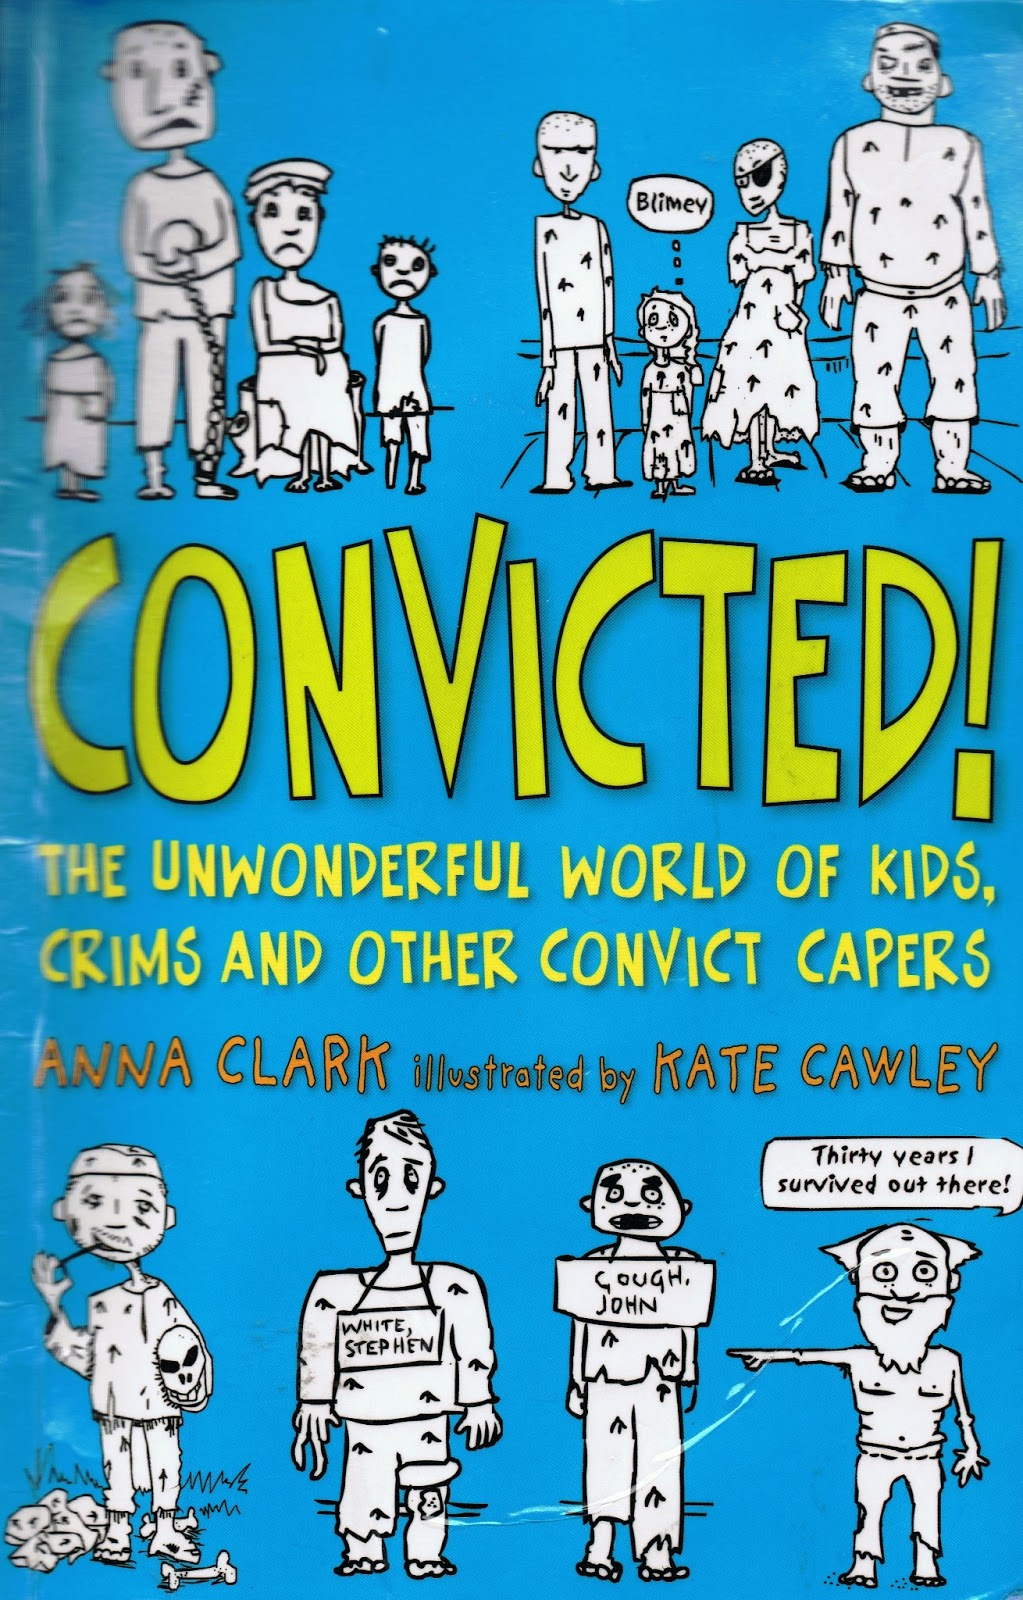 convicts to australia essay Free term paper on differences between male and female convict treatment in australia available totally free at planet paperscom, the largest free term paper community.